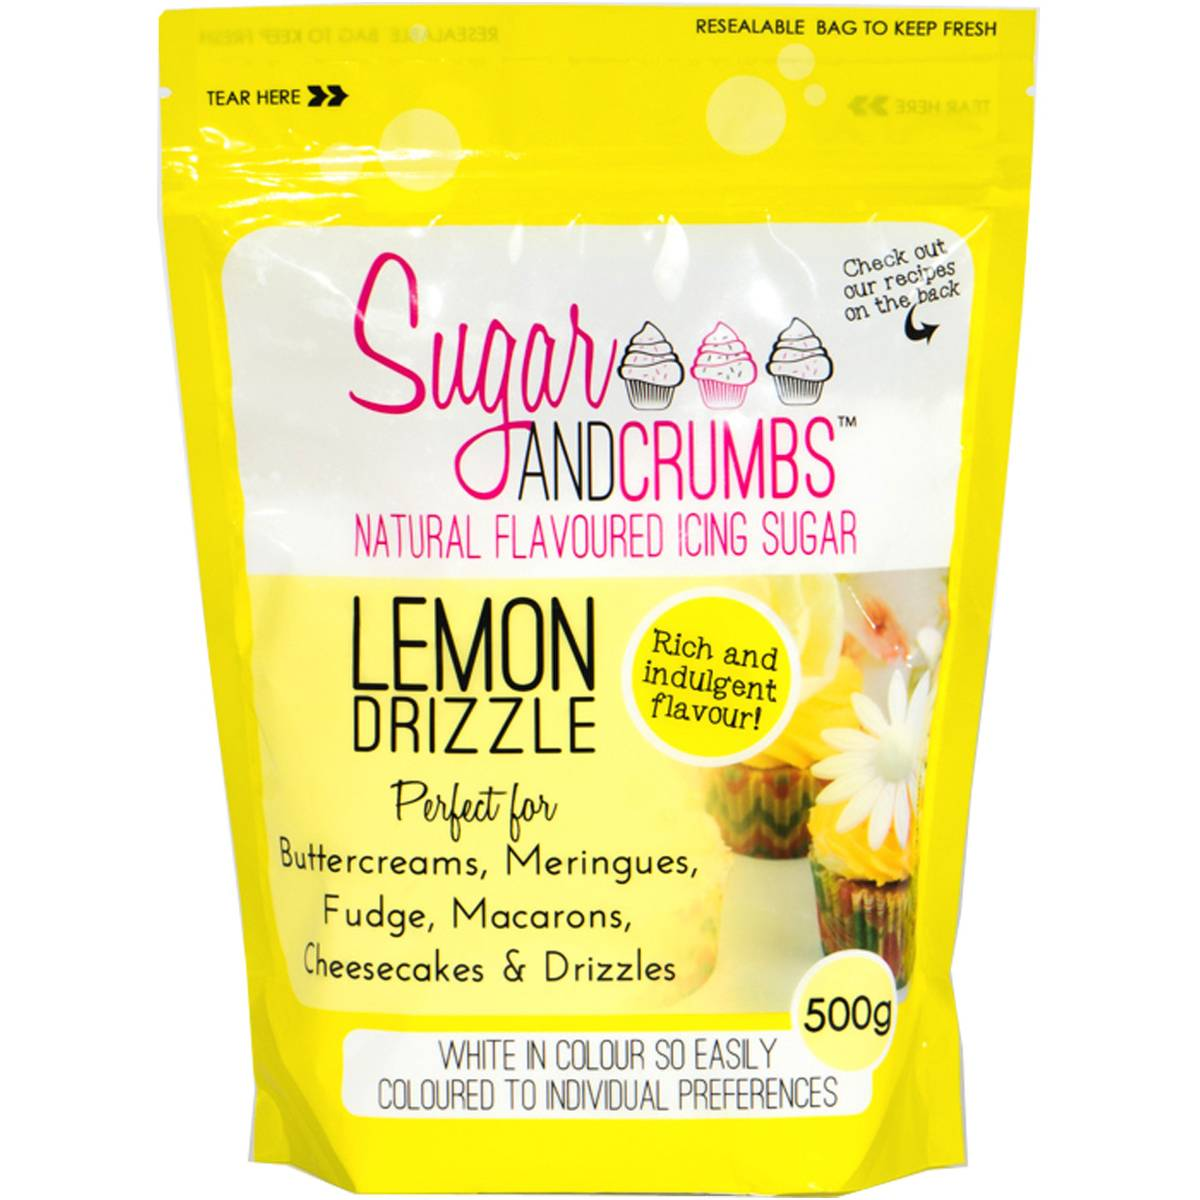 Sugar and Crumbs Lemon Drizzle Natural Flavoured Icing Sugar 500 g